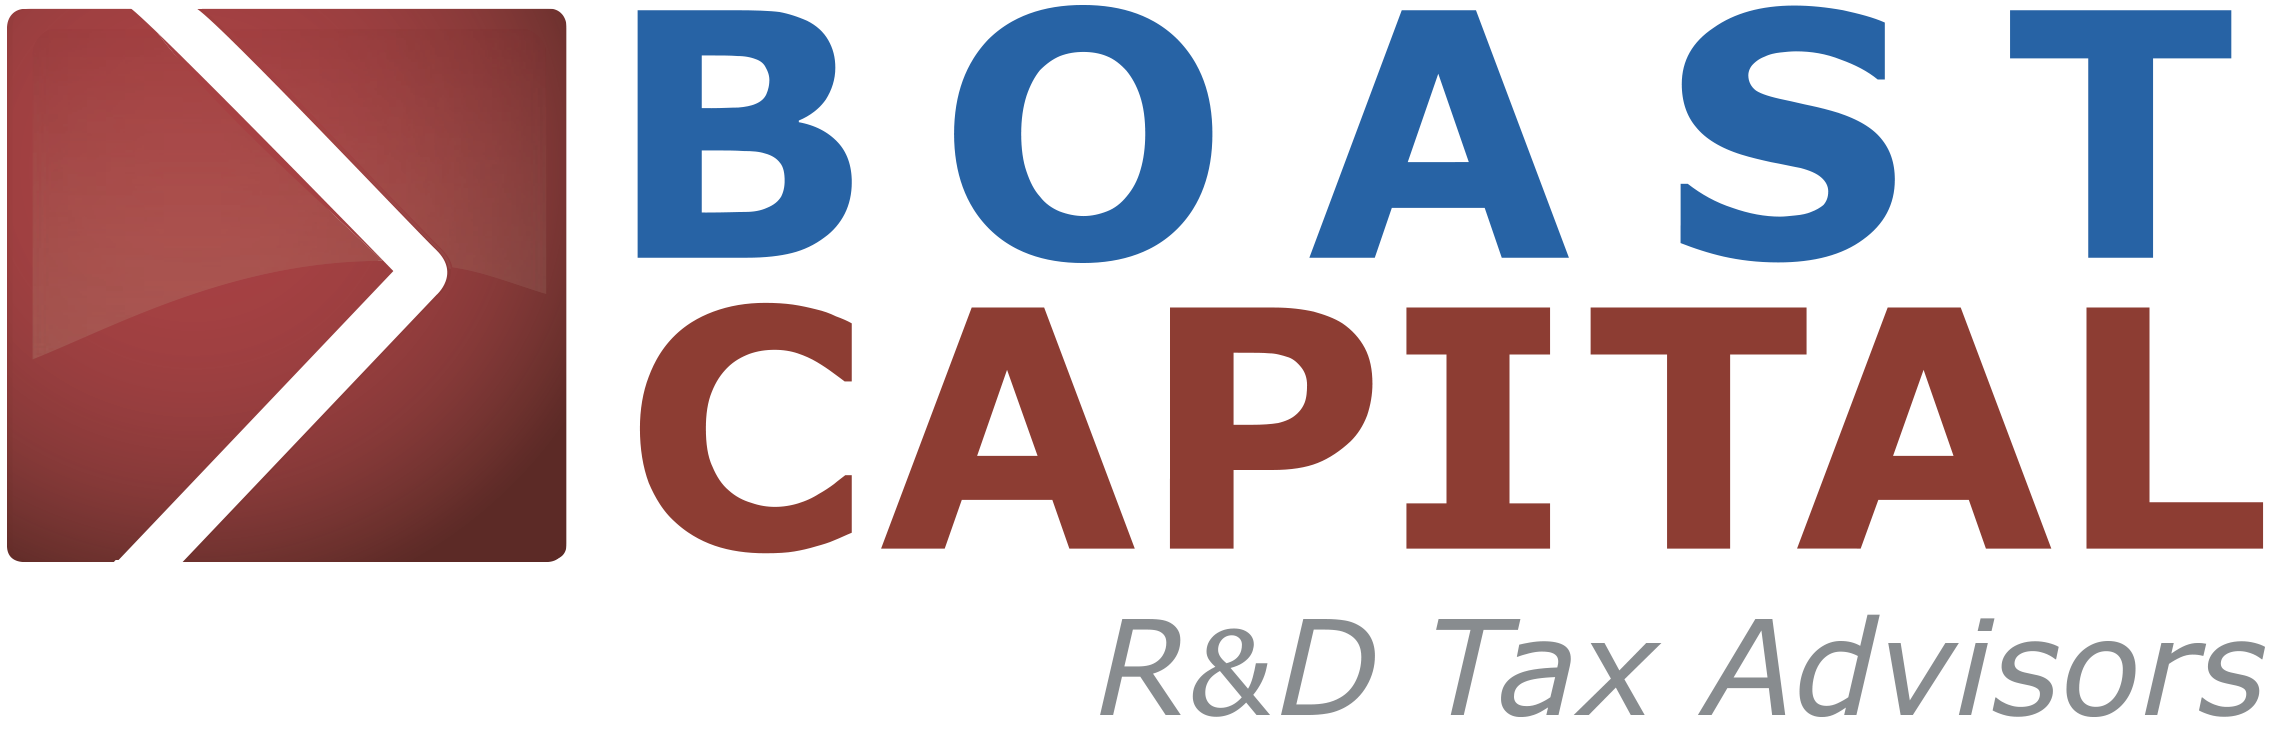 BoastCapital-slogan.png